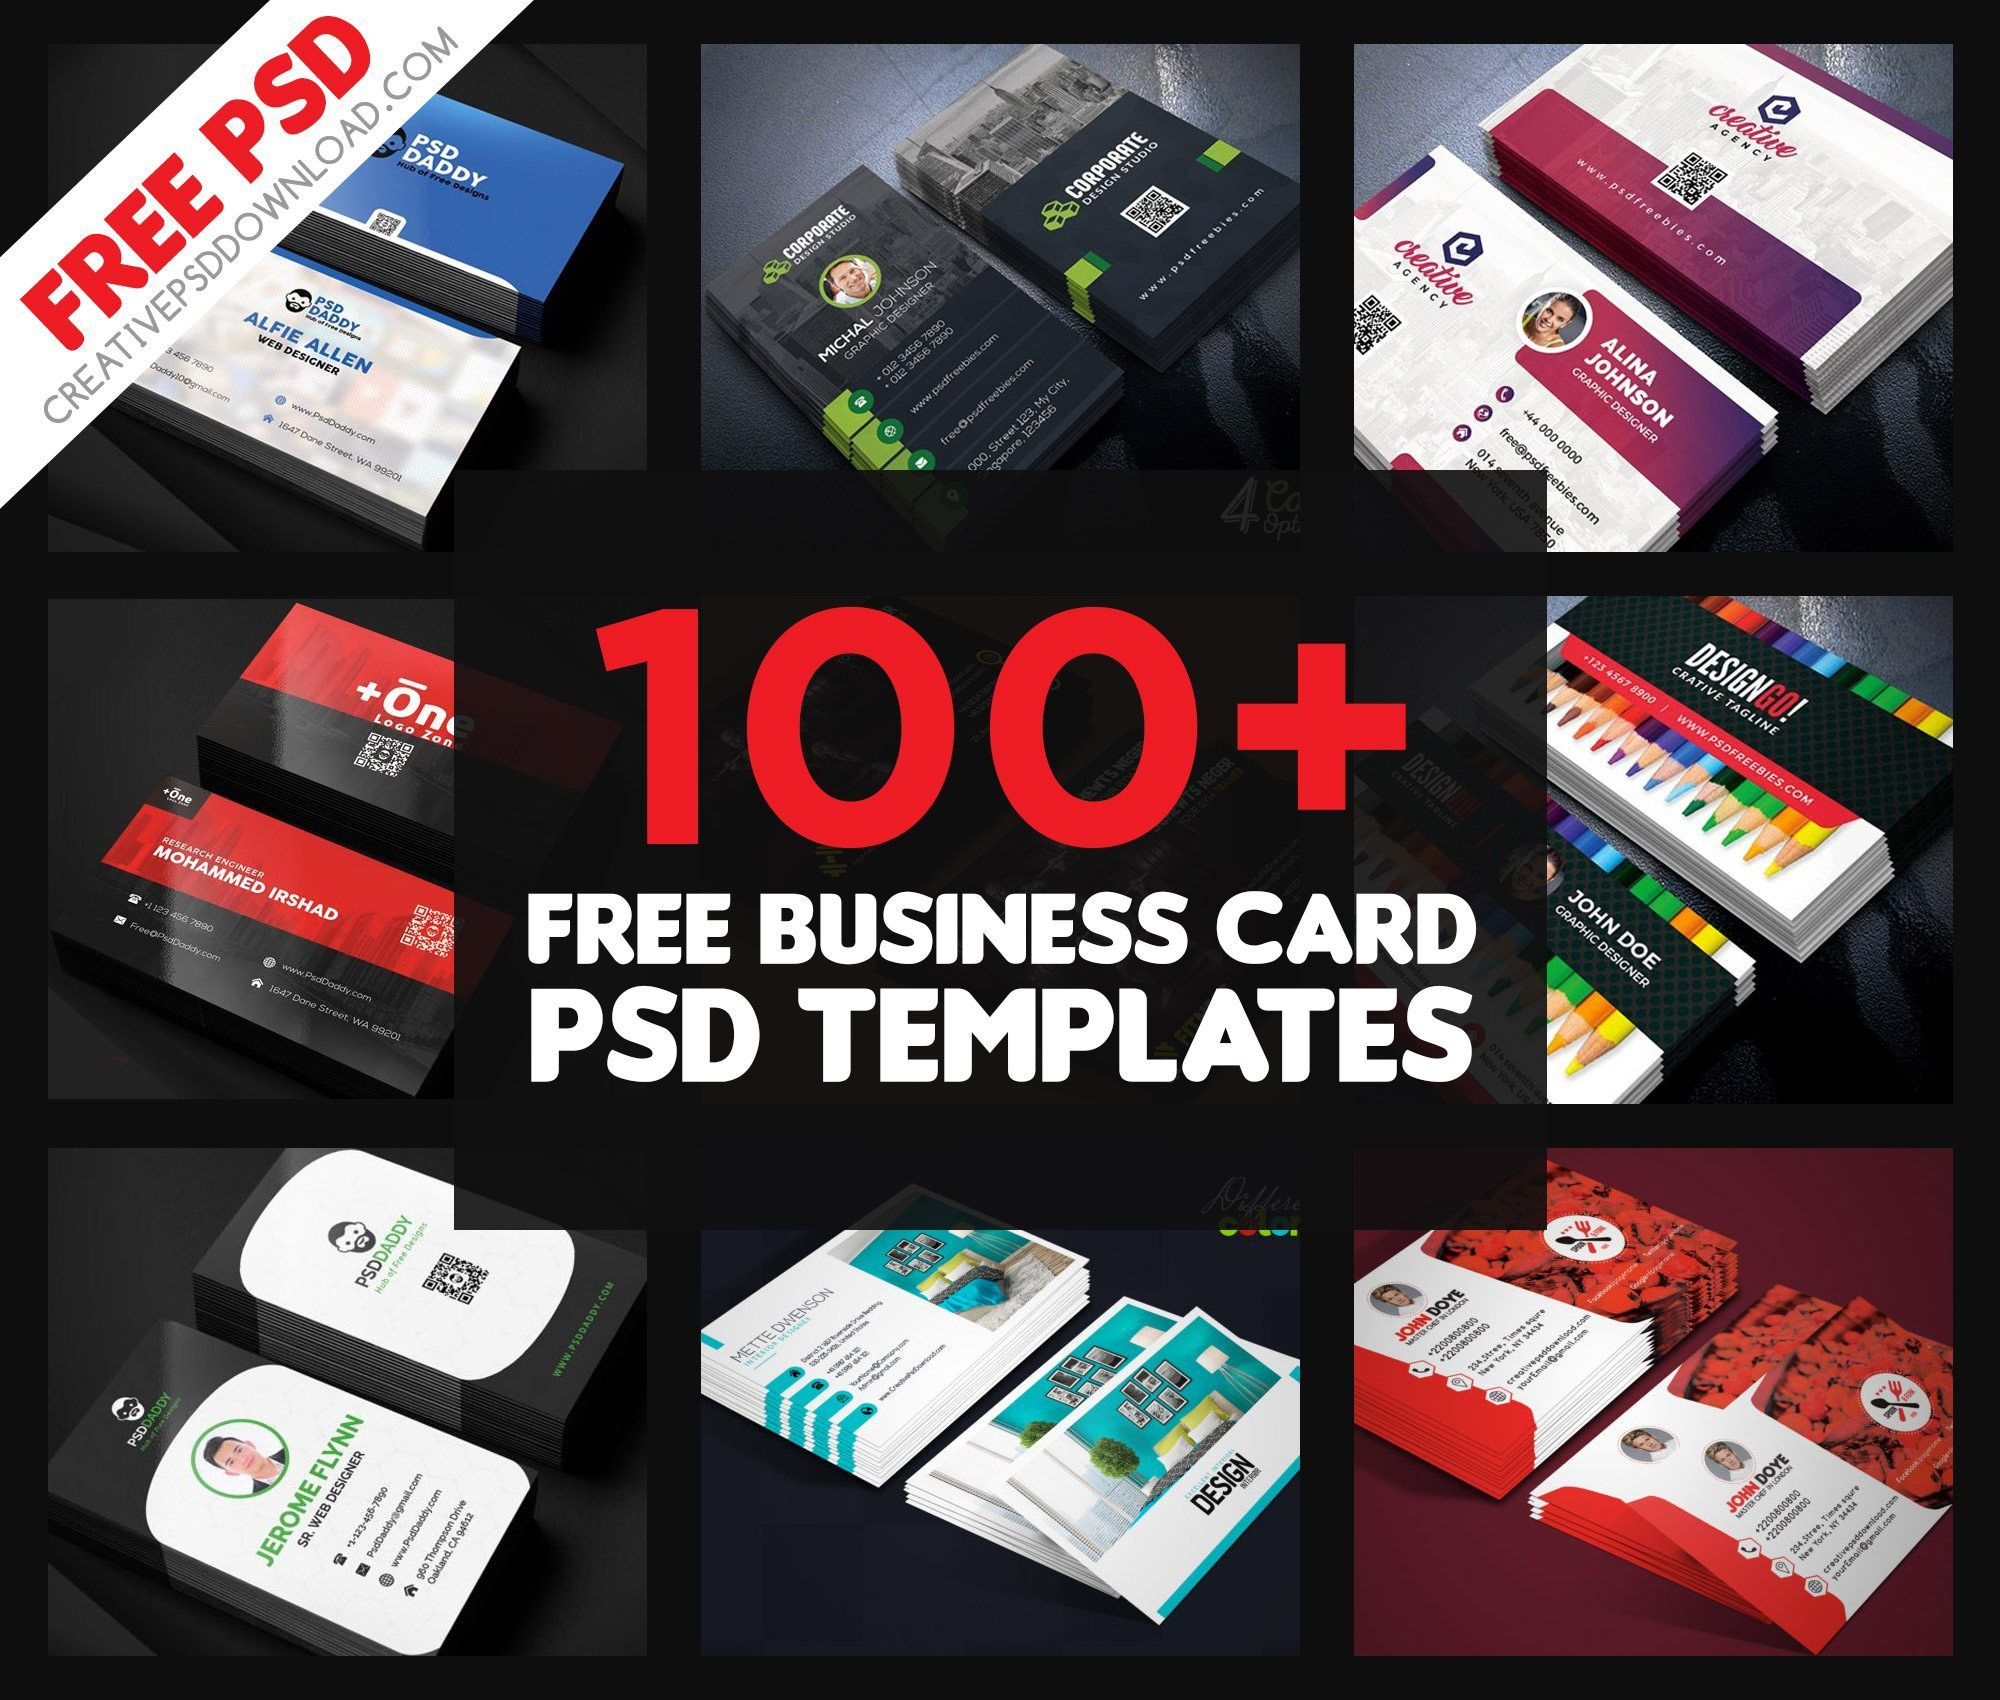 005 Amazing Free Adobe Photoshop Busines Card Template Highest Clarity  Templates DownloadFull